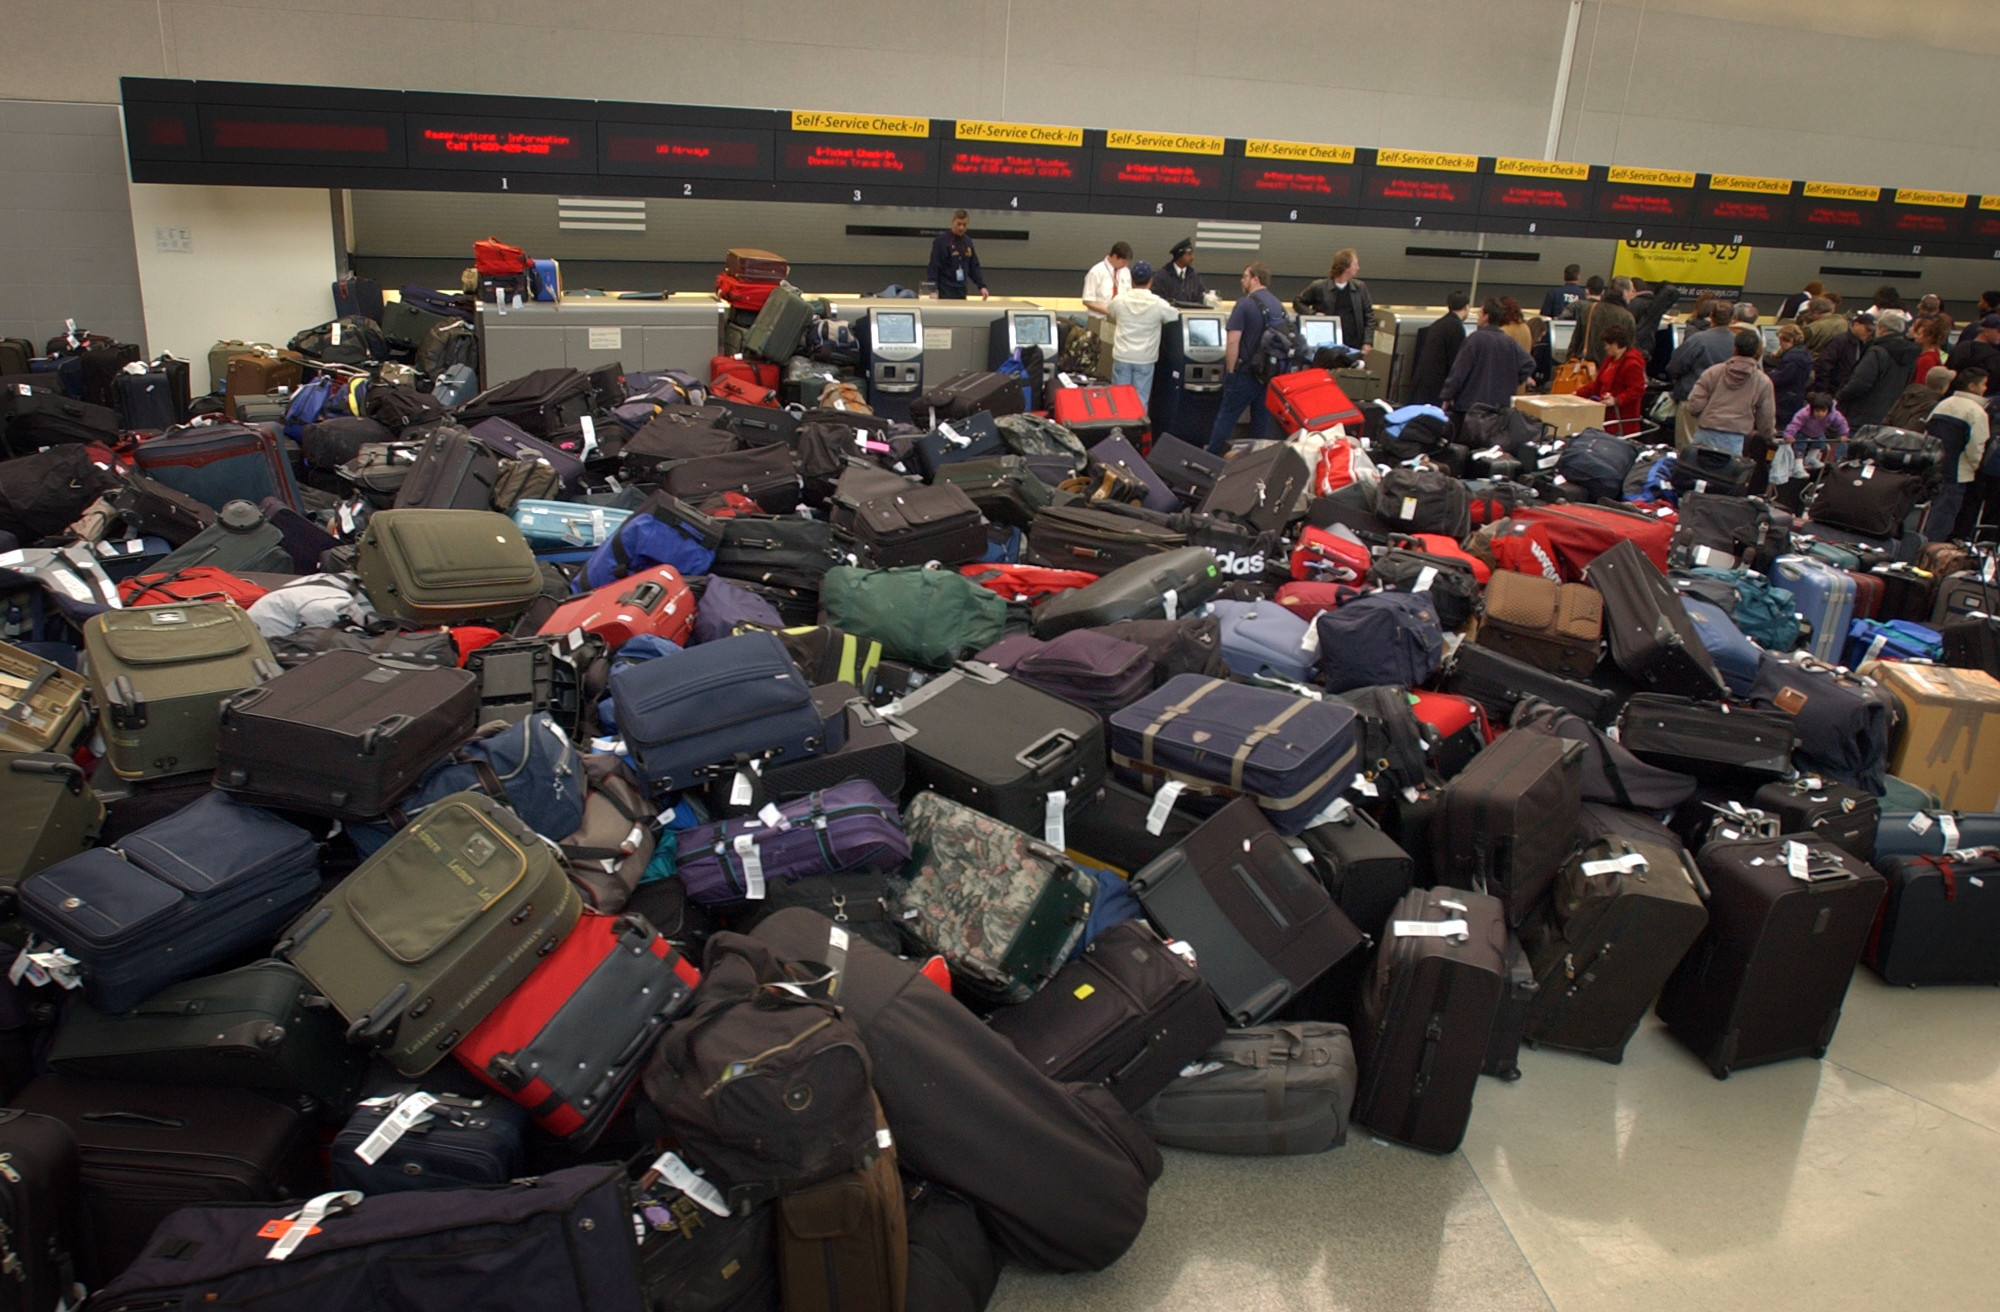 Rate of lost luggage drops more than 60% over seven years - LA Times